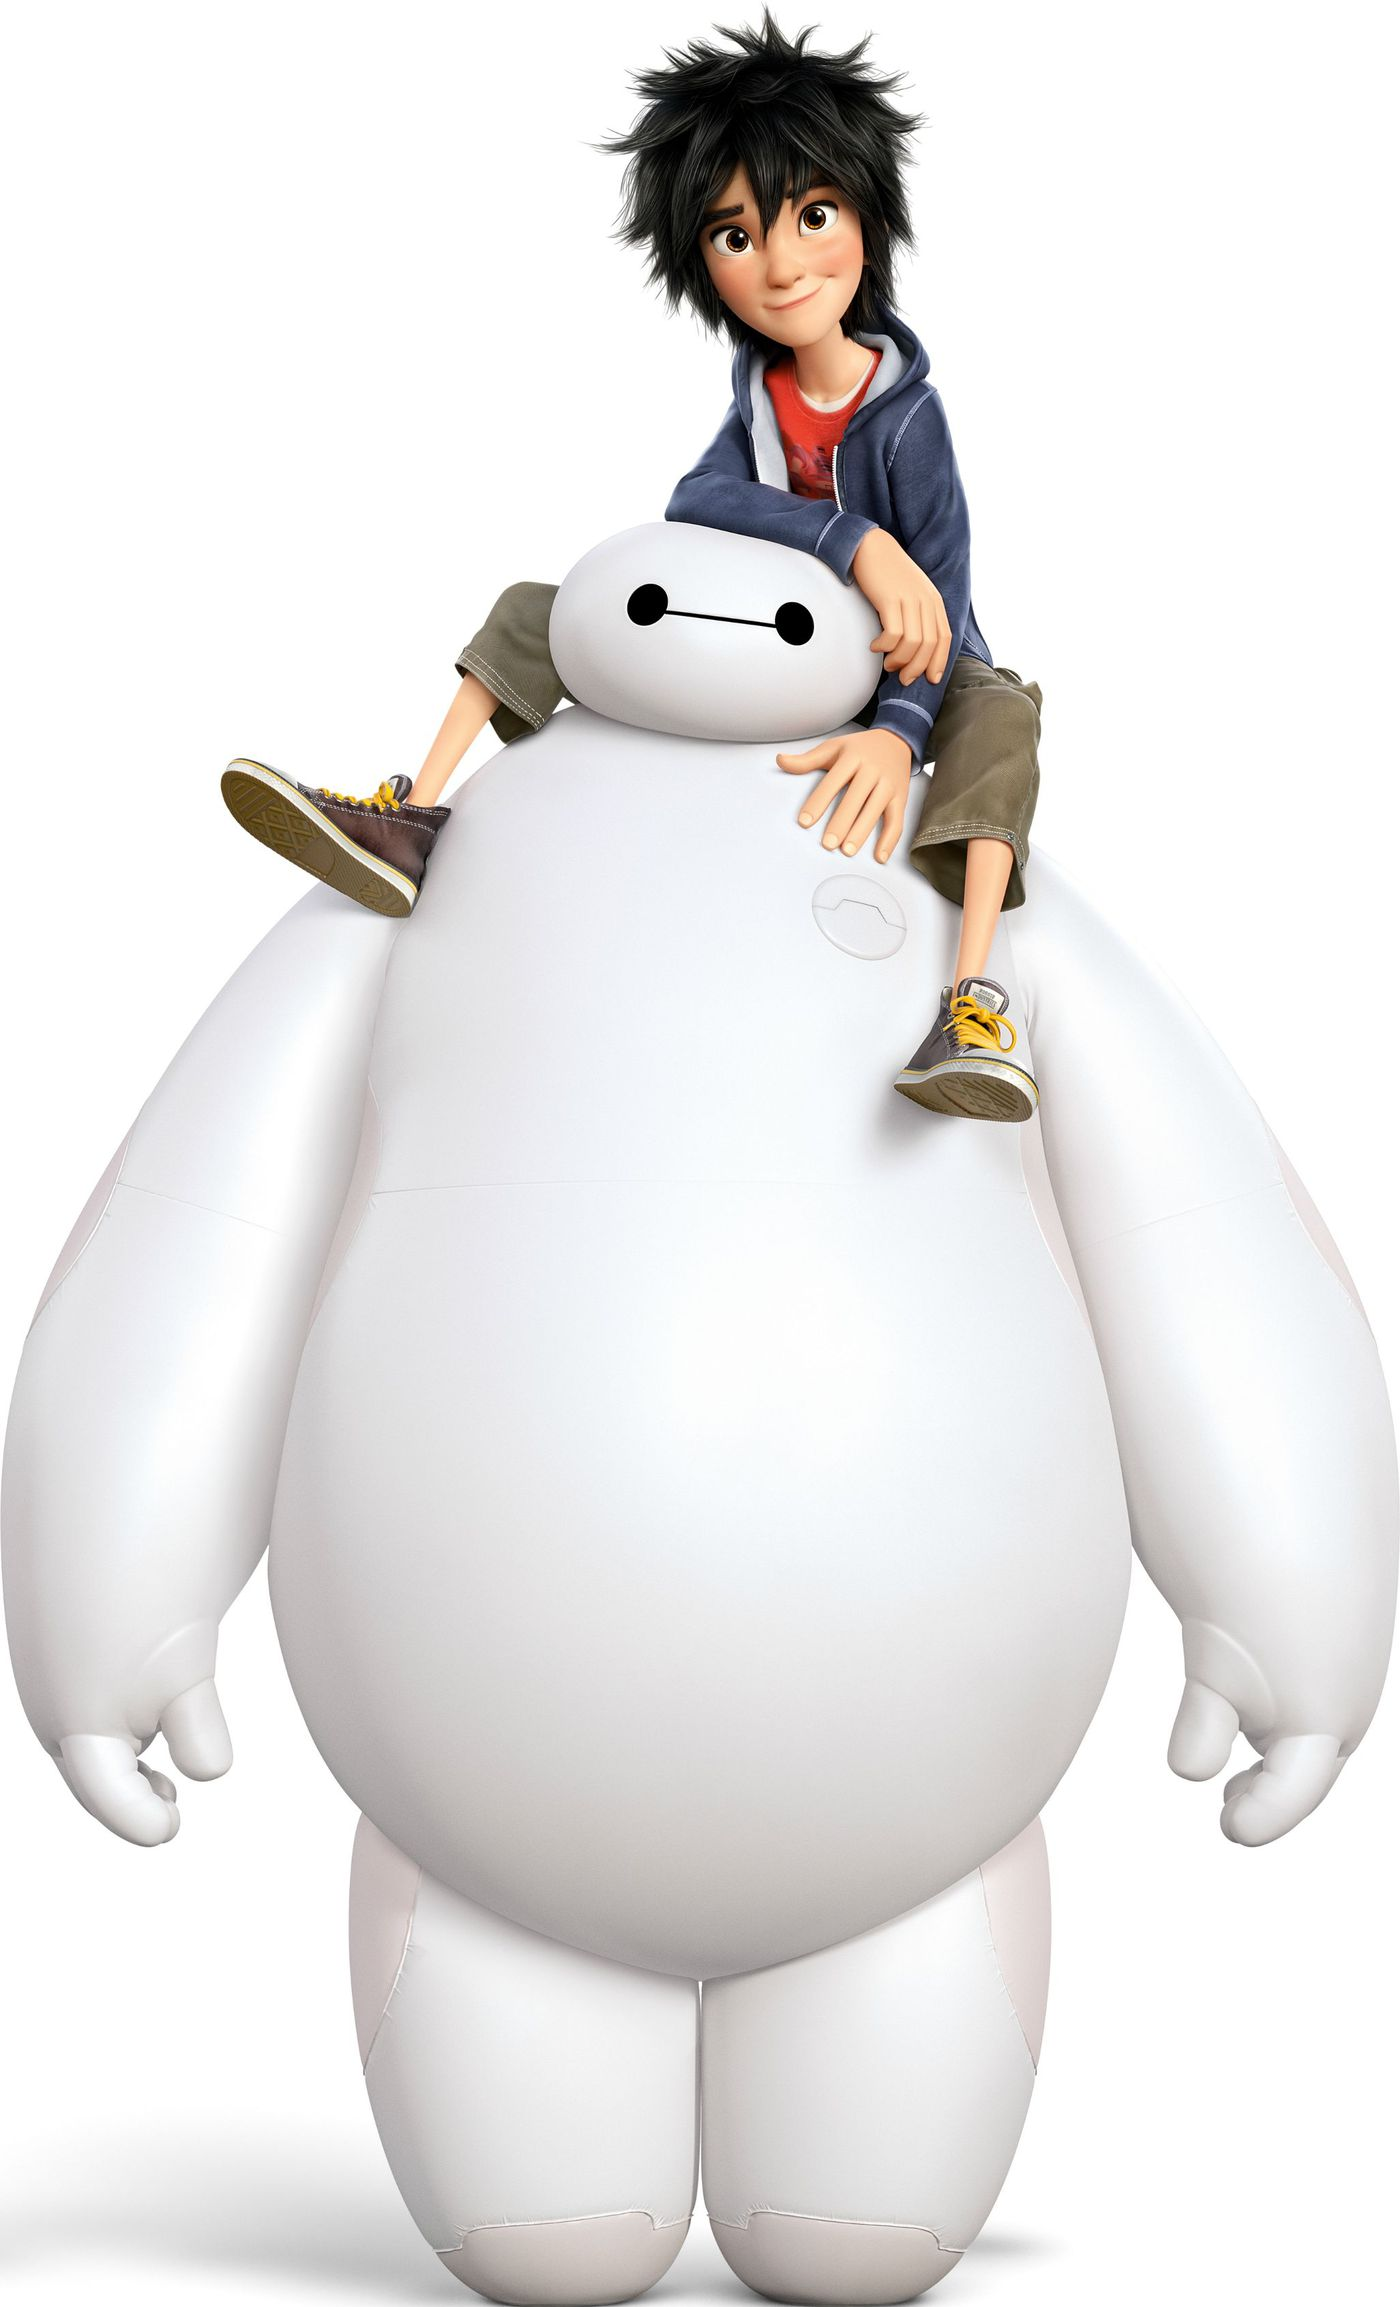 Big Hero 6 Is The Anti Violence Superhero Movie Youve Been Waiting For